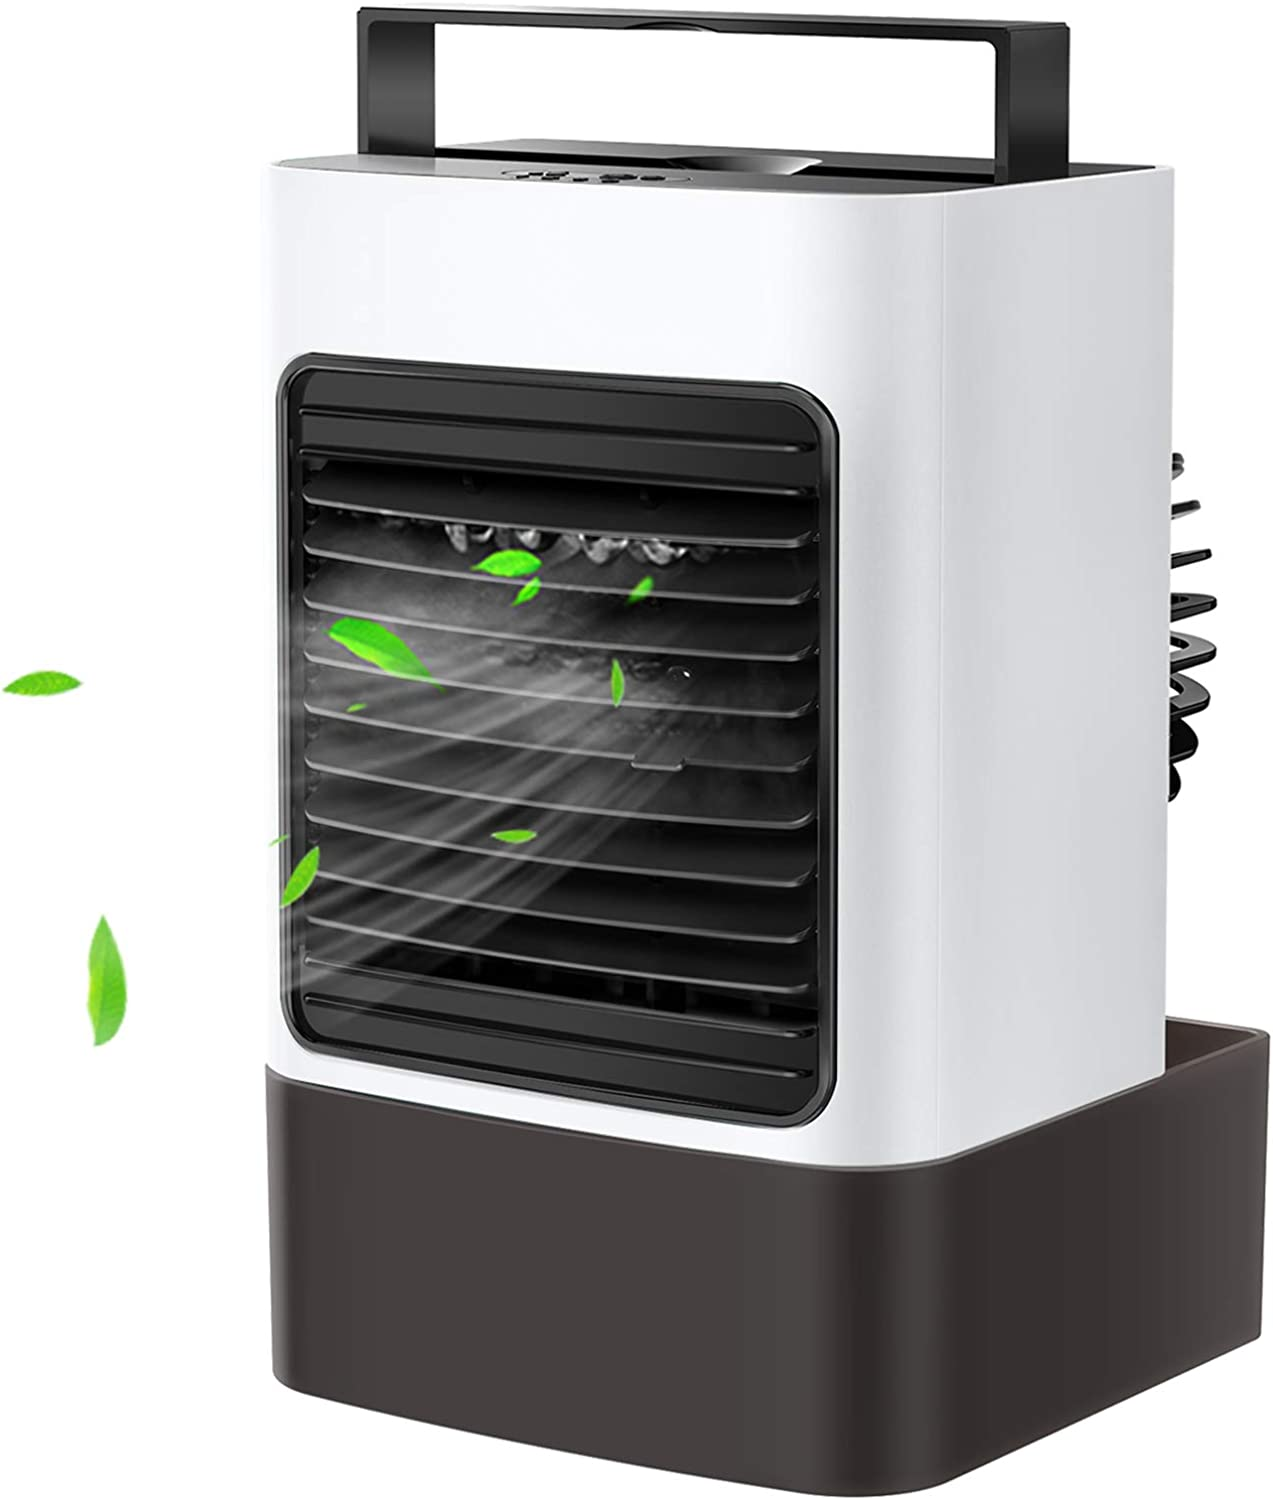 Portable Air Conditioner Fan Mini Evaporative Cooler Personal Air Cooler Desktop Fan Ultra-Quiet Humidifier Misting Cooling Oscillation Fan for Home Office Bedroom